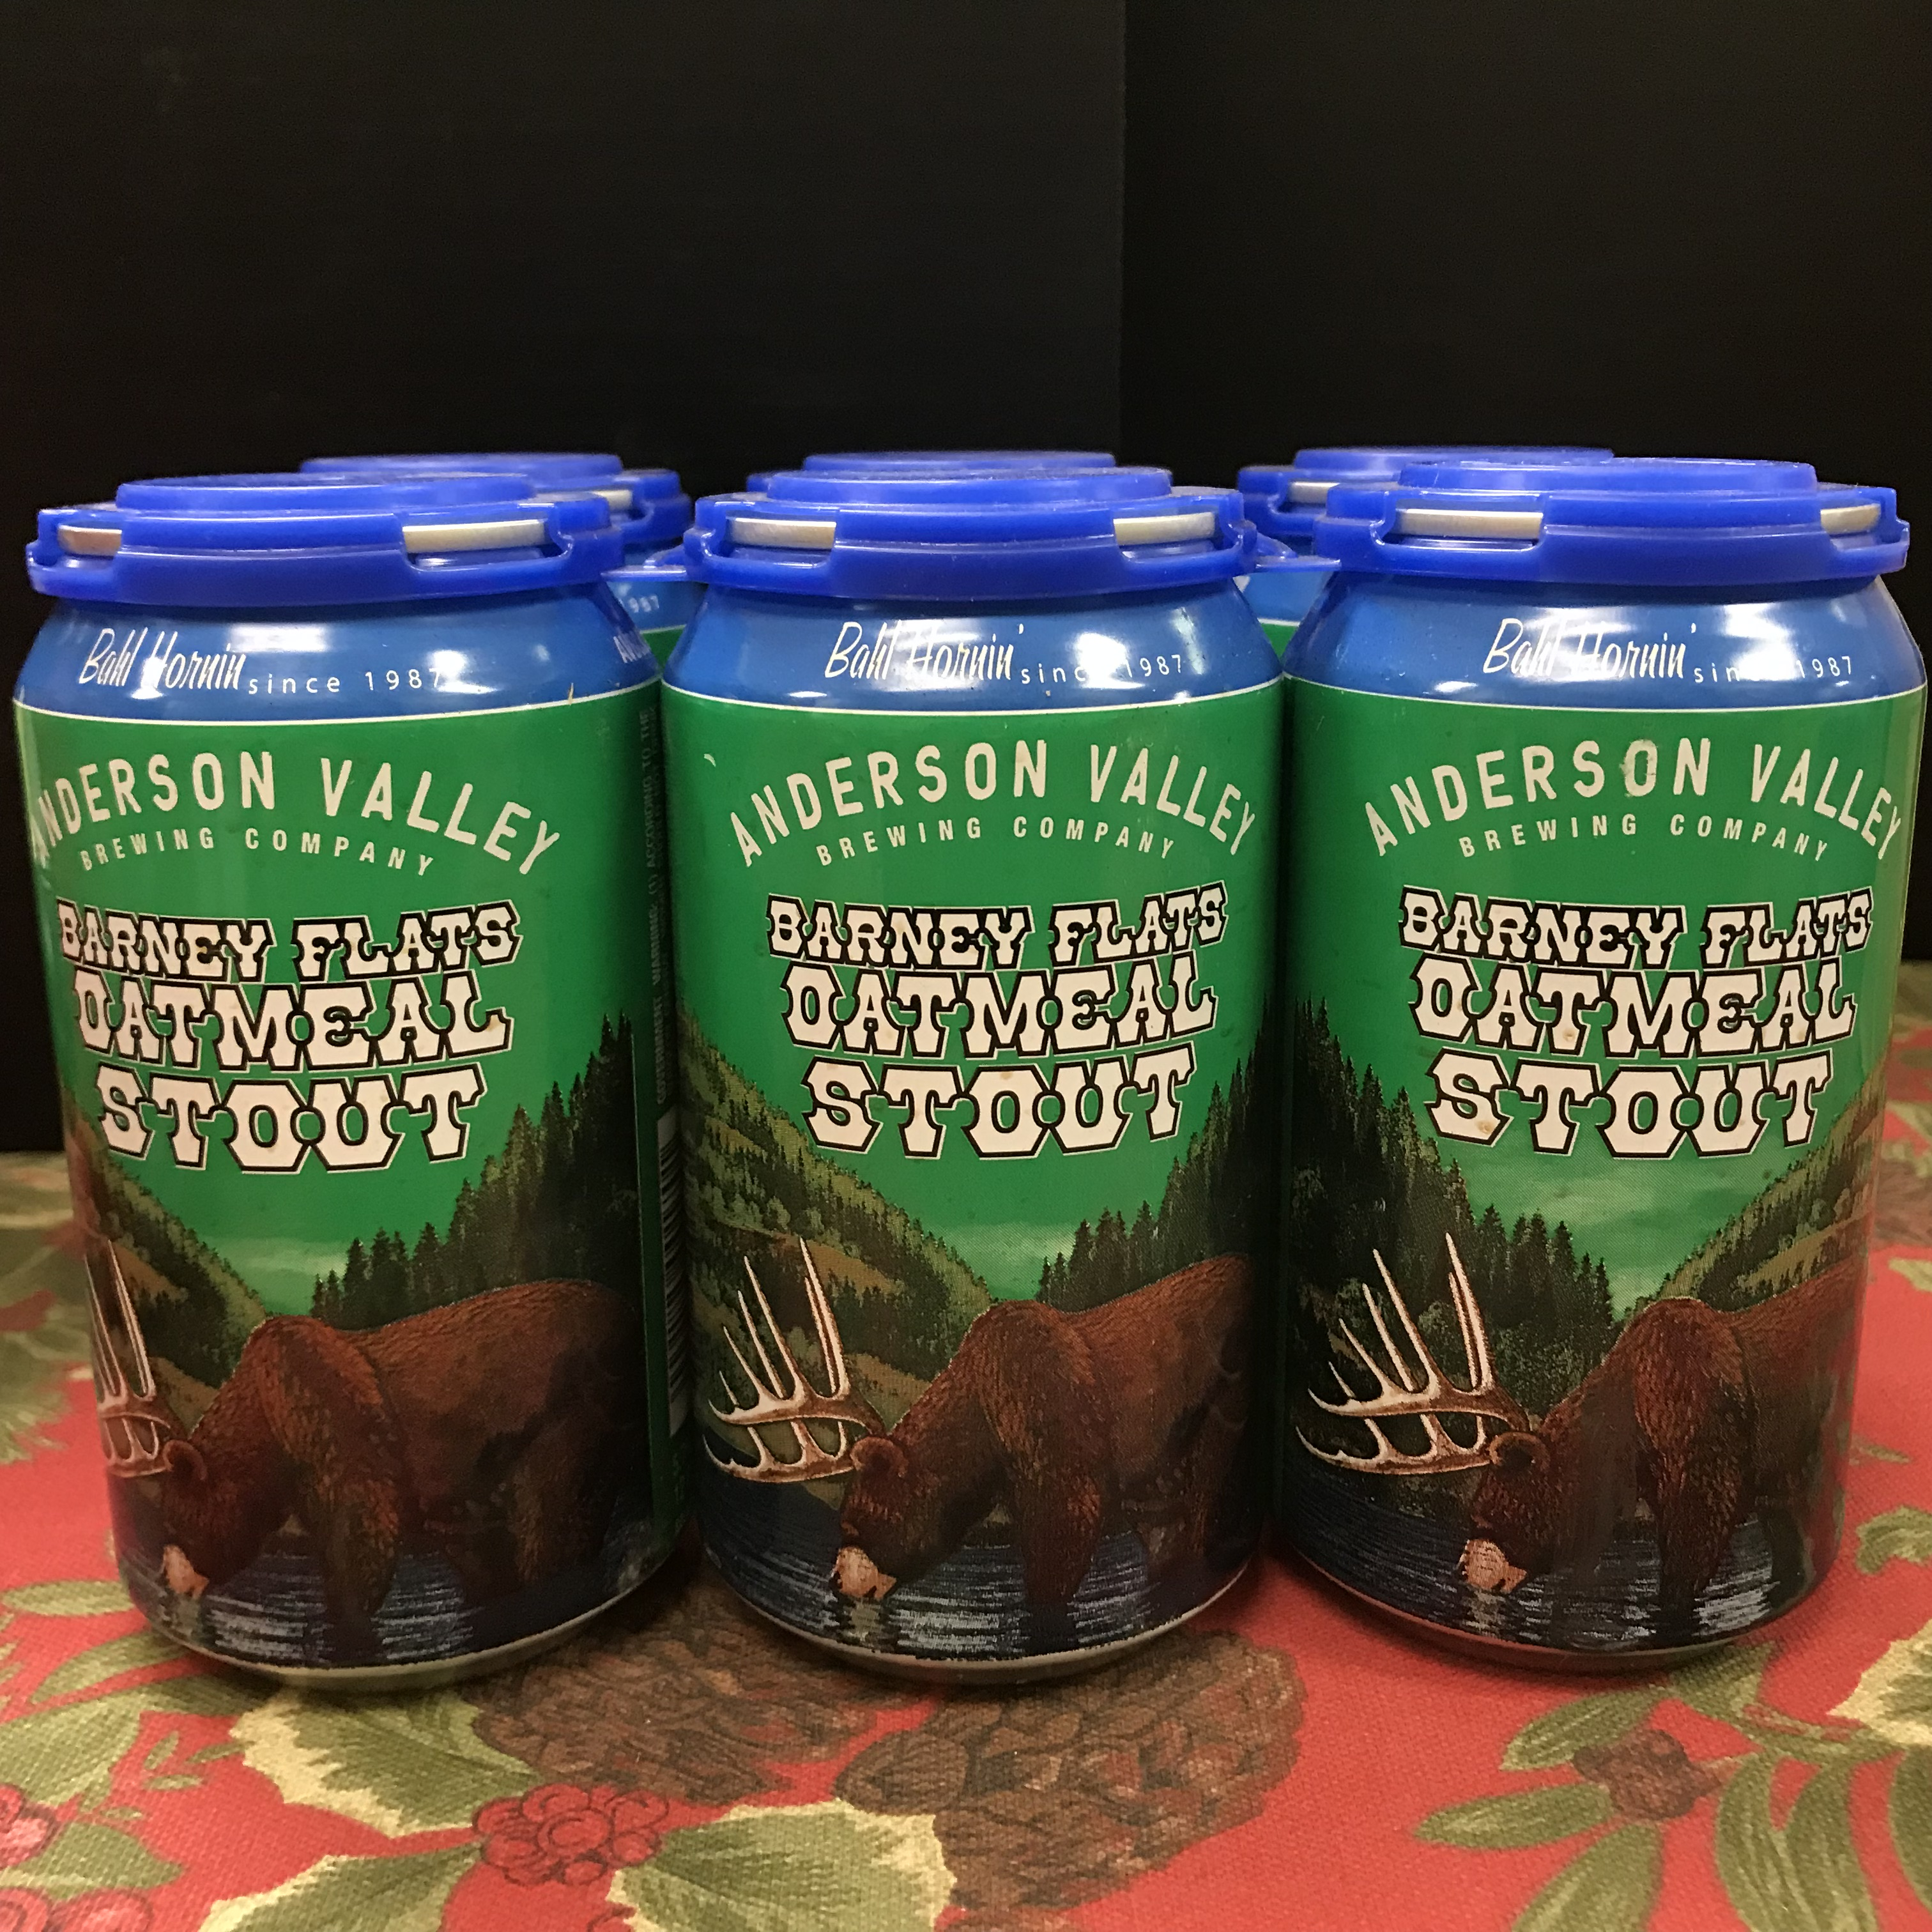 Anderson Valley Barney Flats Oatmeal Stout 6 x 12oz cans